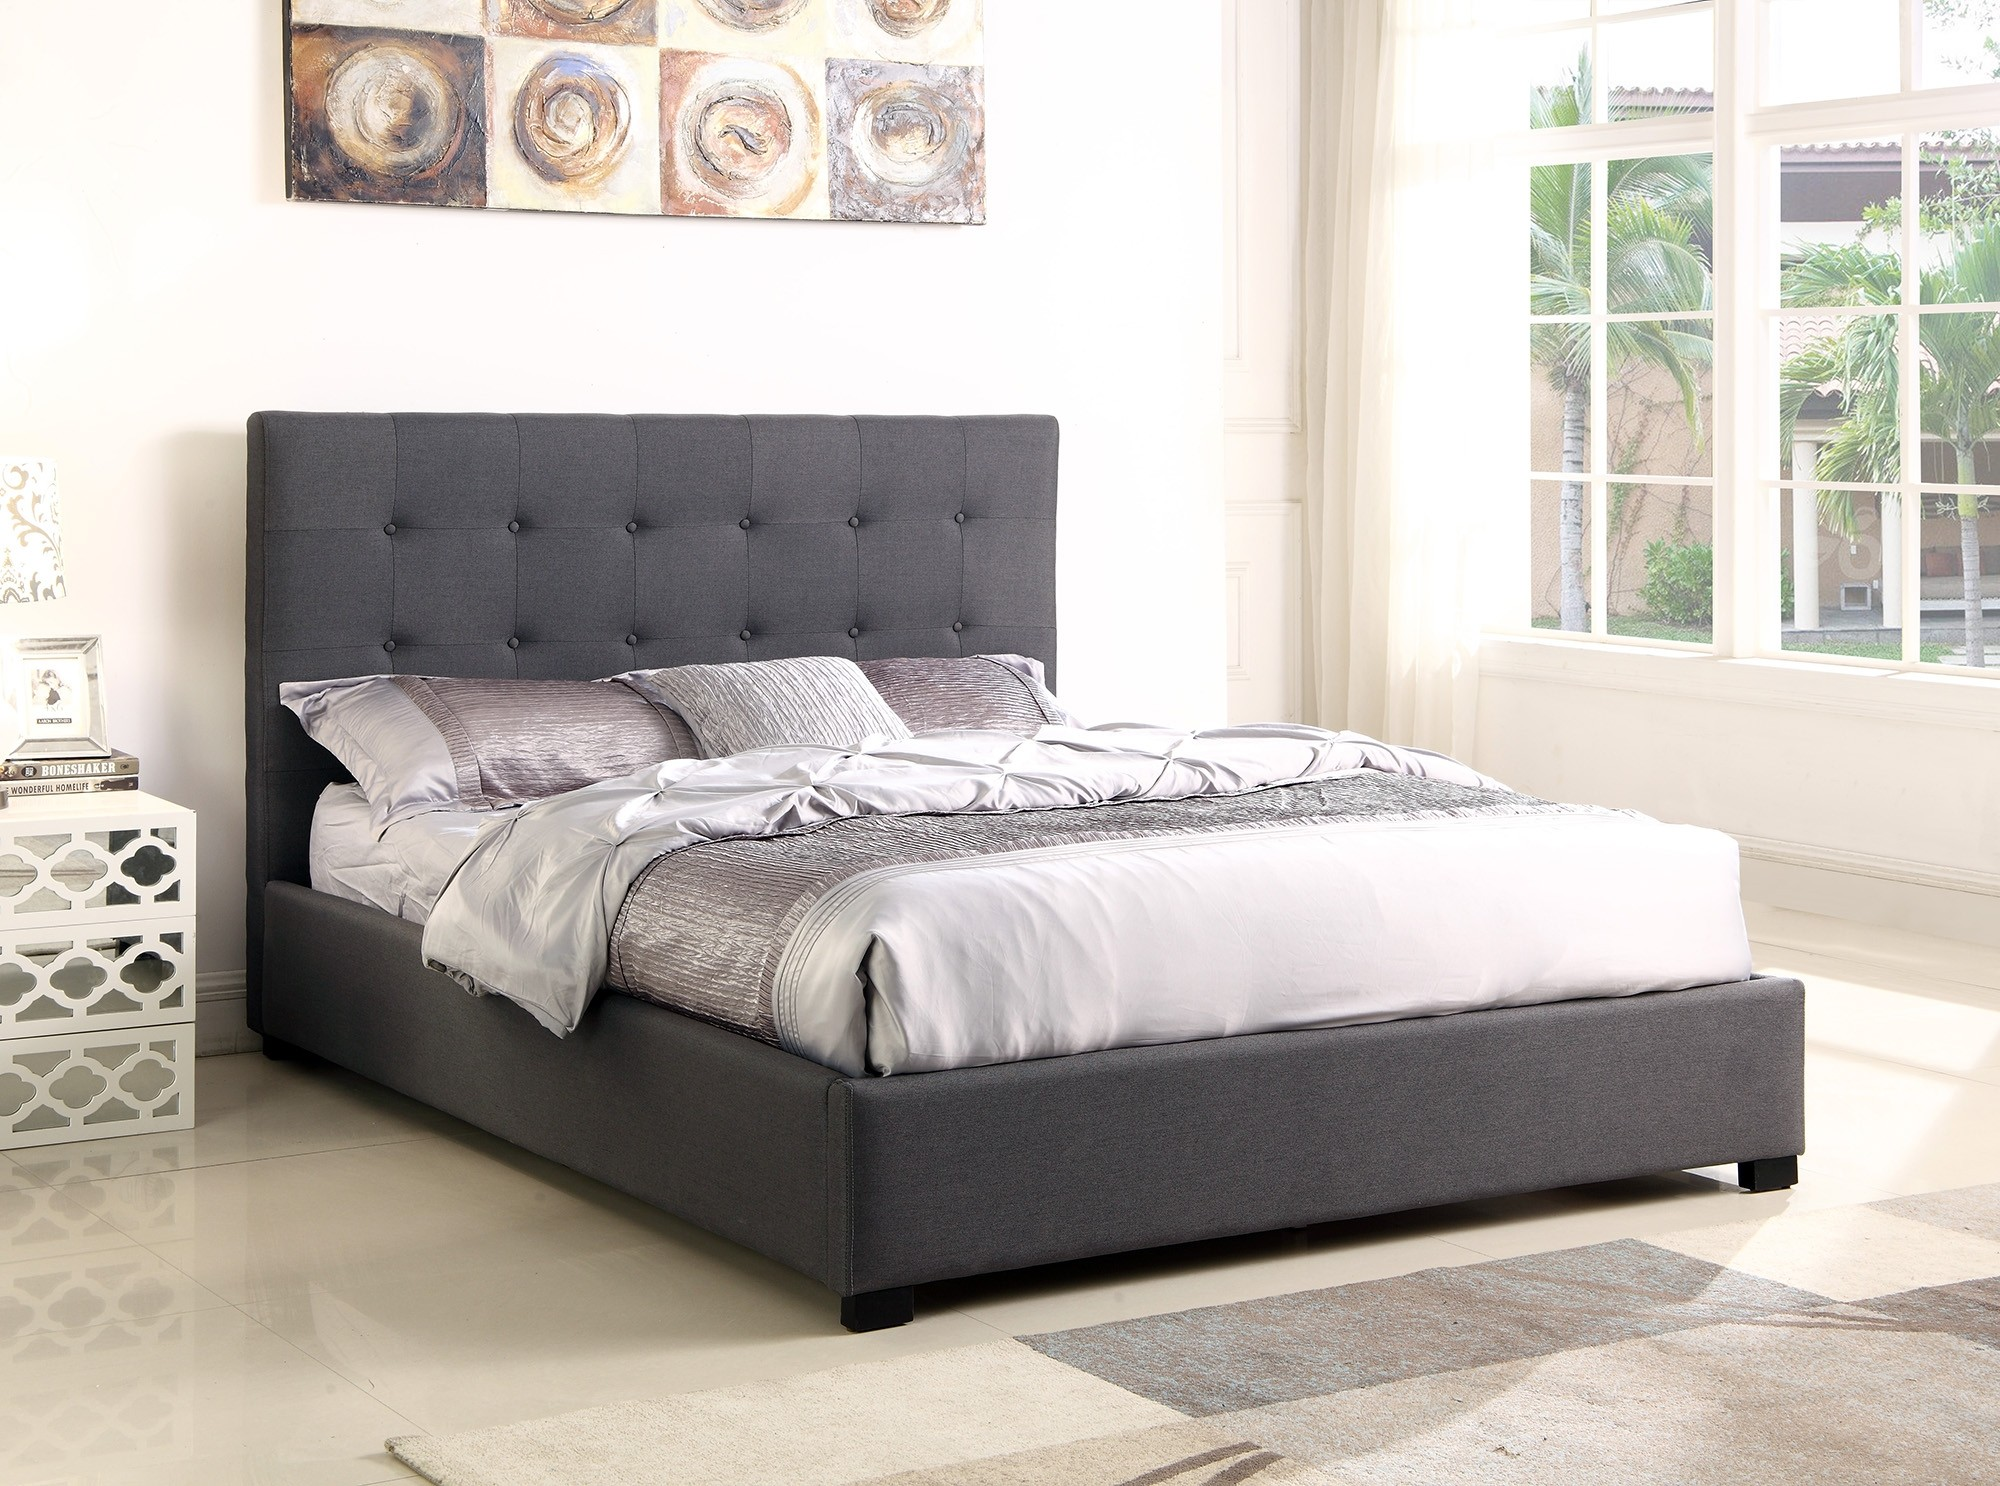 lit coffre layton sommier 160cm tissu gris. Black Bedroom Furniture Sets. Home Design Ideas